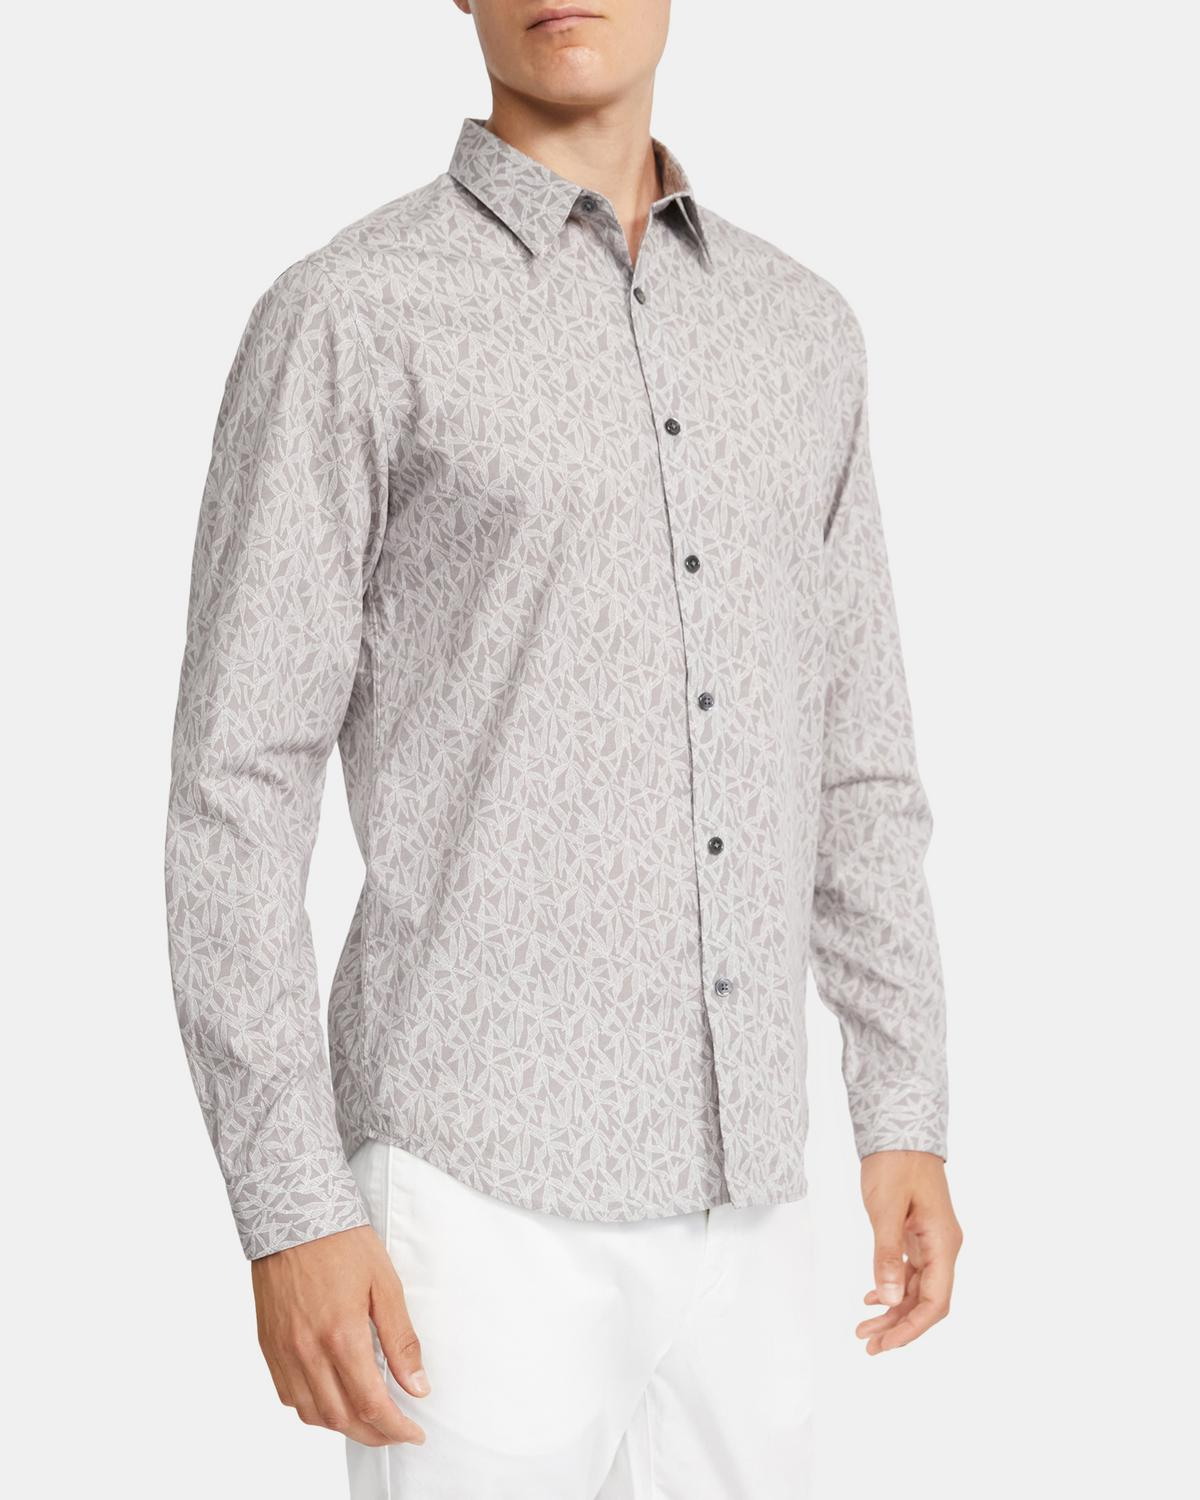 Standard-Fit Shirt in Leaf Print Cotton-Viscose